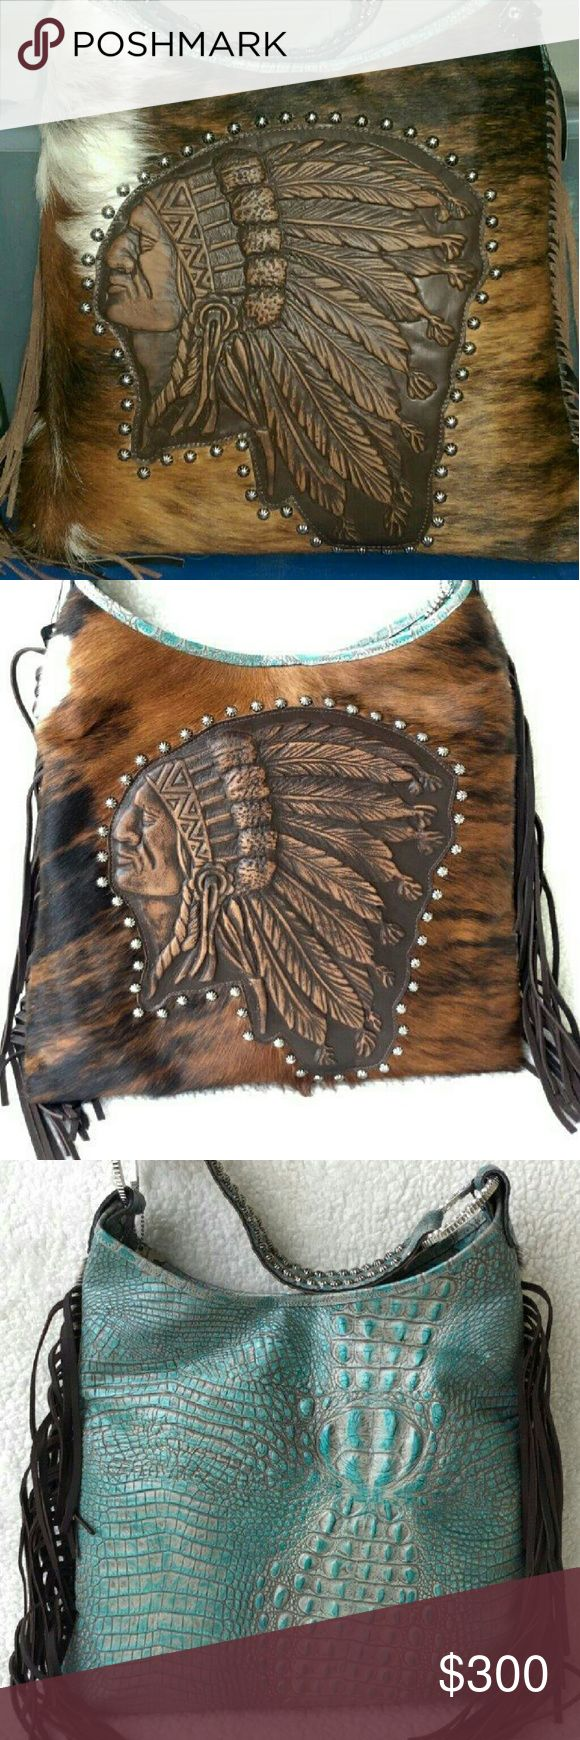 RAVIANI LEATHER PURSE Made in Texas premium quality leather and cowhide,indian logo leather fringe,1 open pocket 1 zipper pocket on the inside. brindle hide and turquoise this is a large bag length 17.5 strap drop 10 height 17 also have a wallet not listed dust cover and tags 400.00 new raviani Bags Shoulder Bags